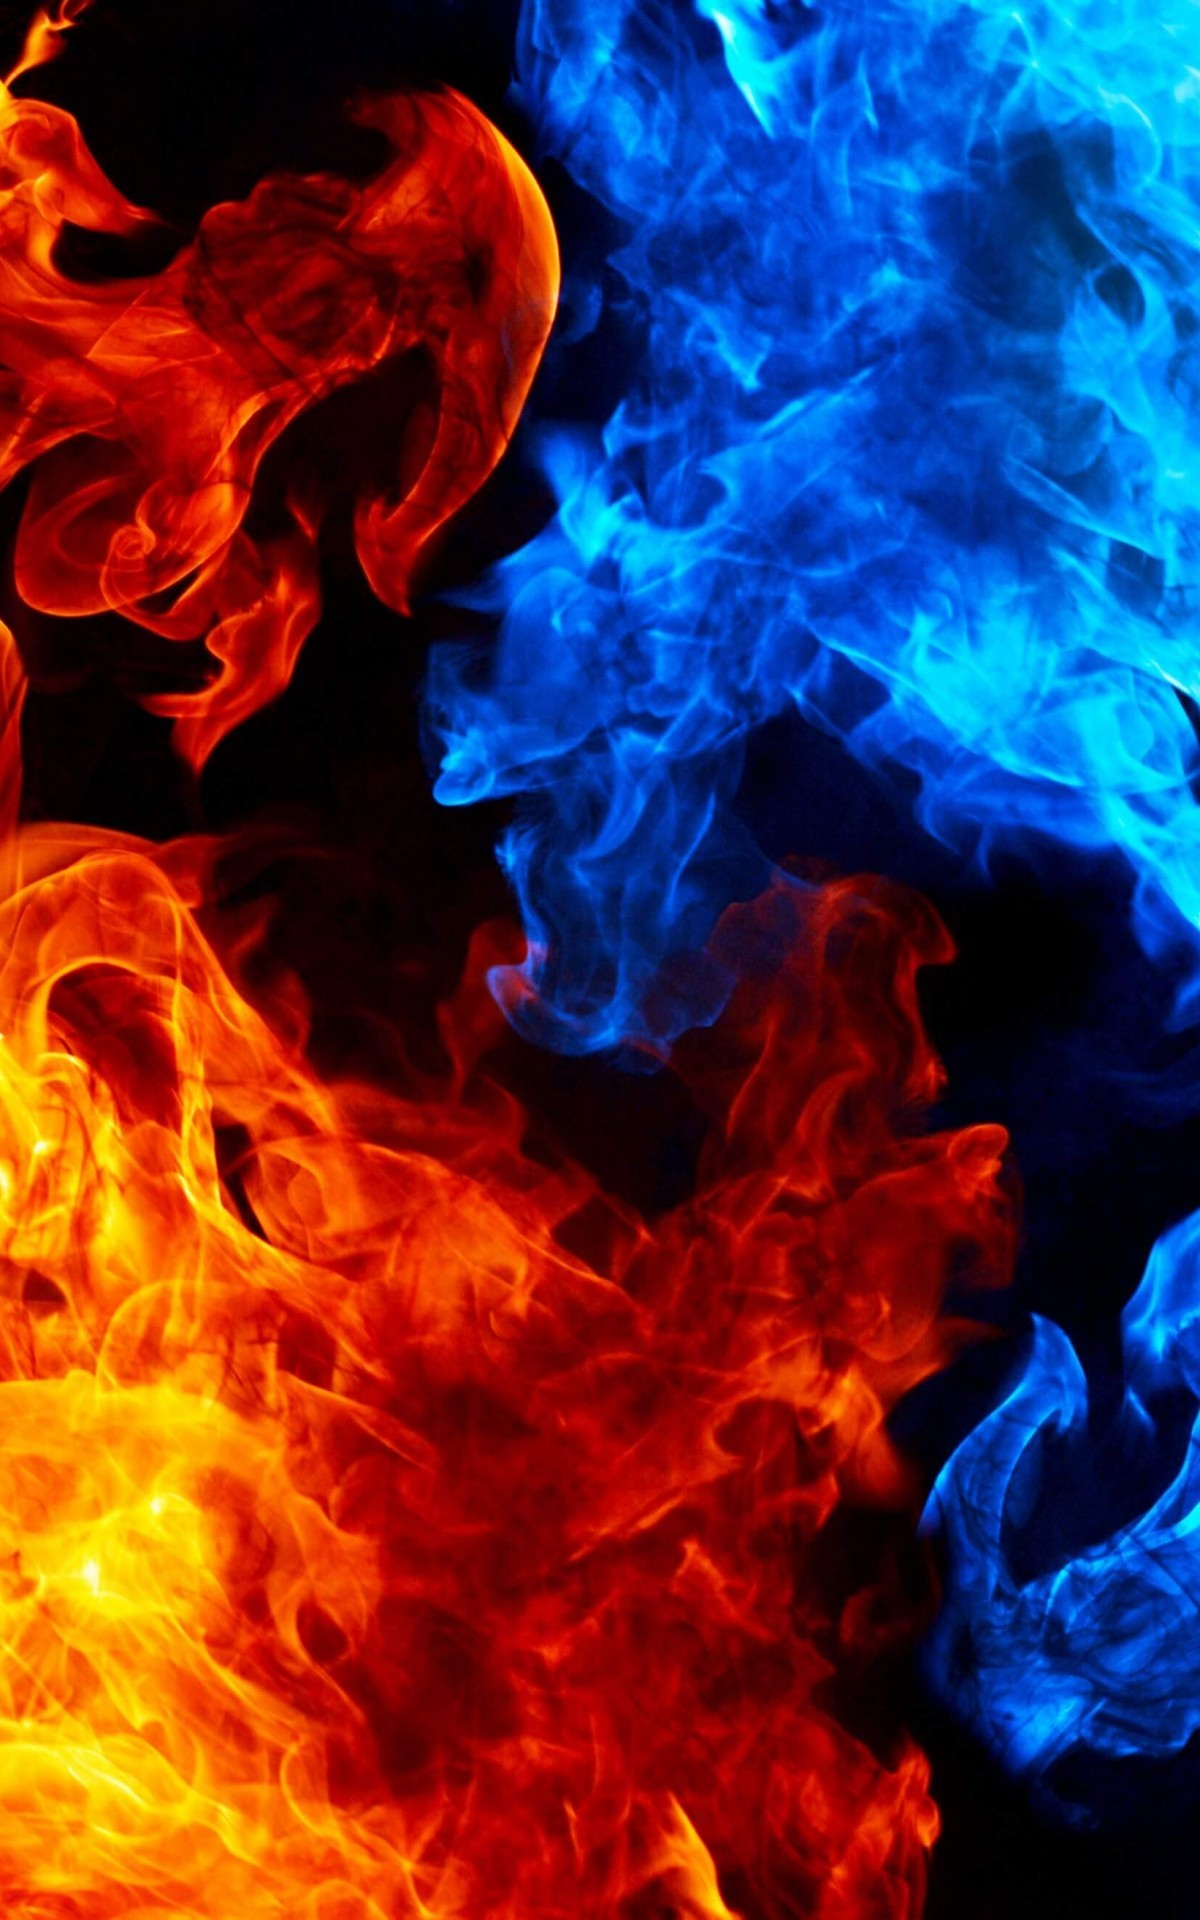 red and blue fire wallpaper (59+ images)